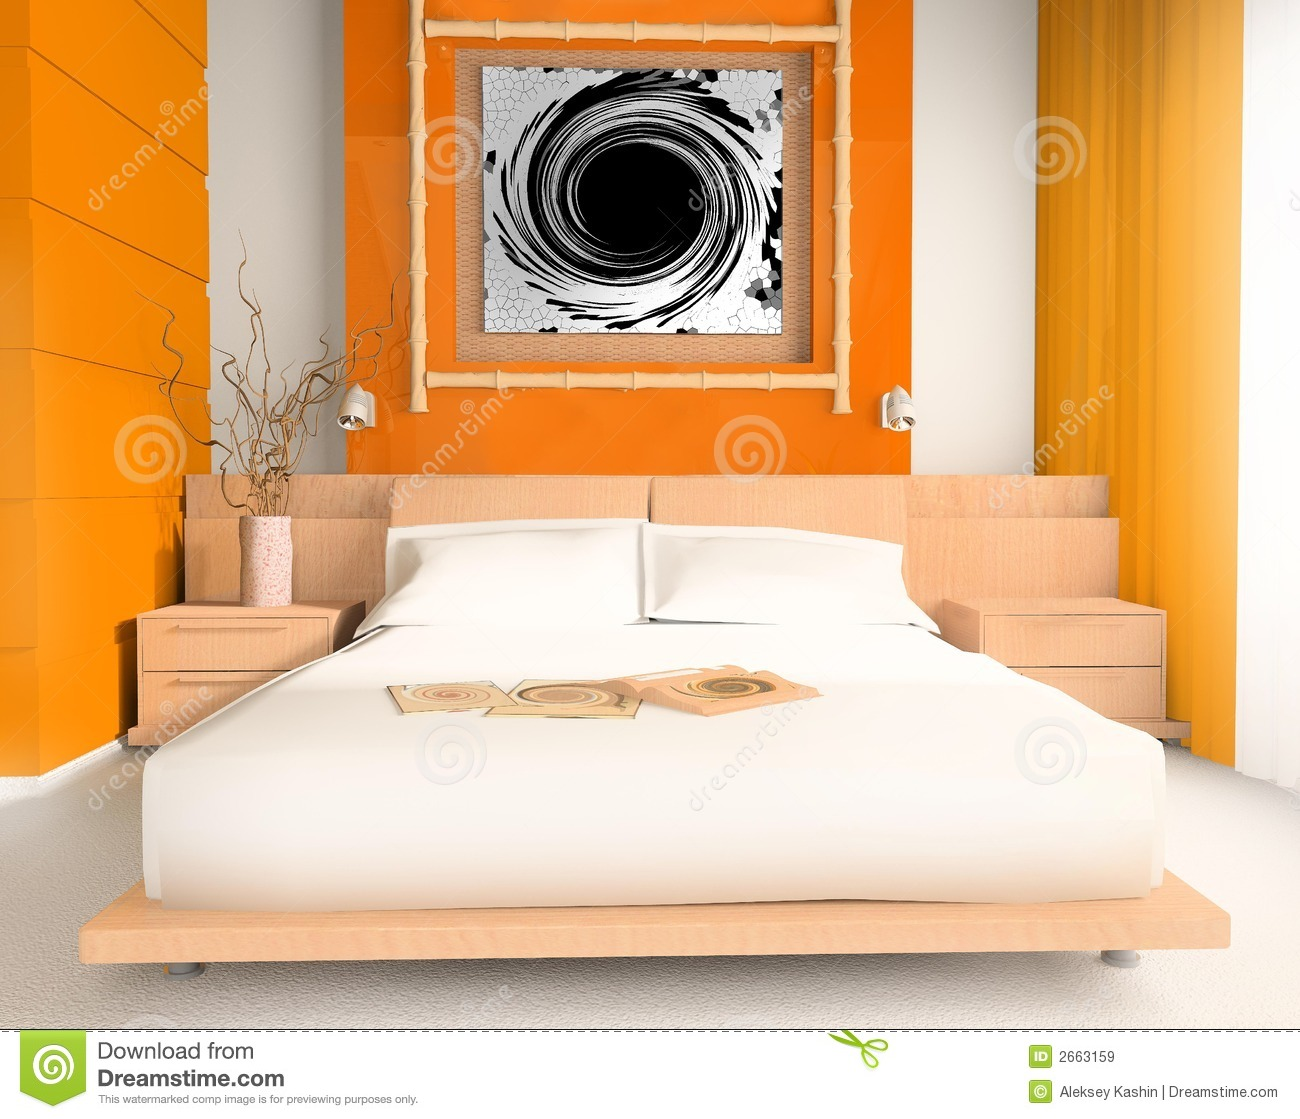 orange schlafzimmer stockbild bild von gl ck schlafzimmer 2663159. Black Bedroom Furniture Sets. Home Design Ideas